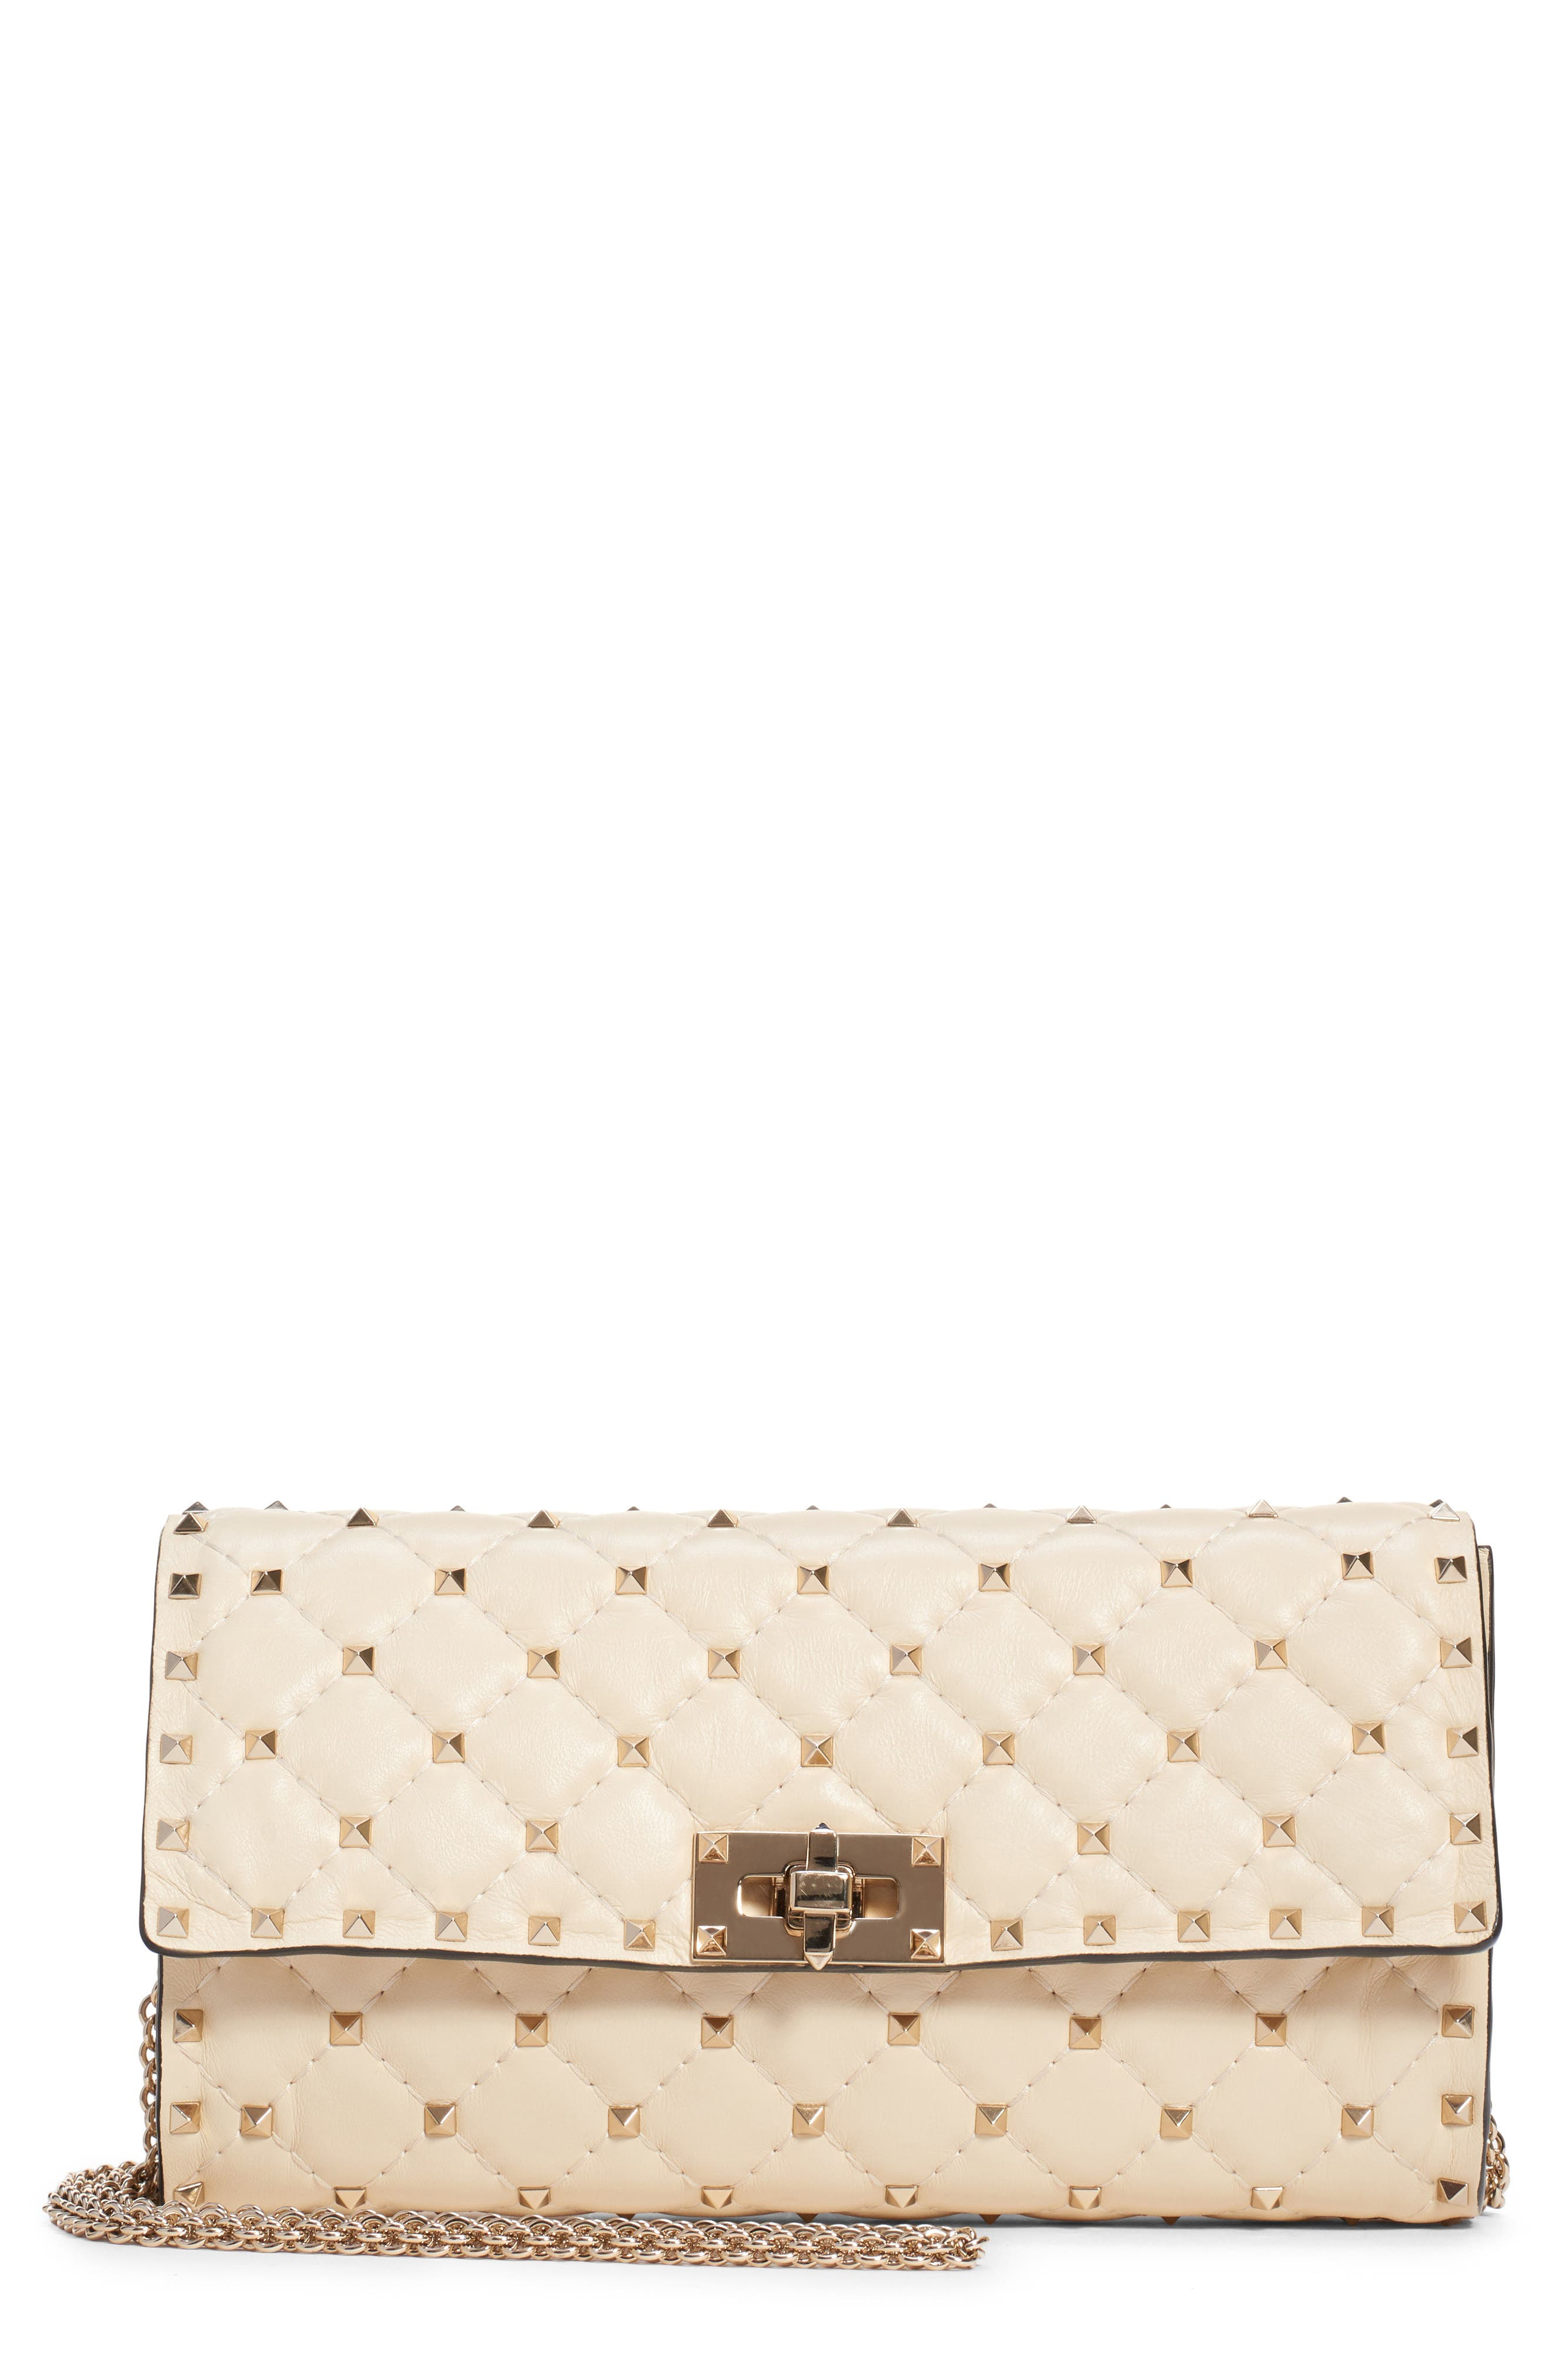 Rockstud Matelassé Quilted Leather Crossbody Bag, Main, color, LIGHT IVORY